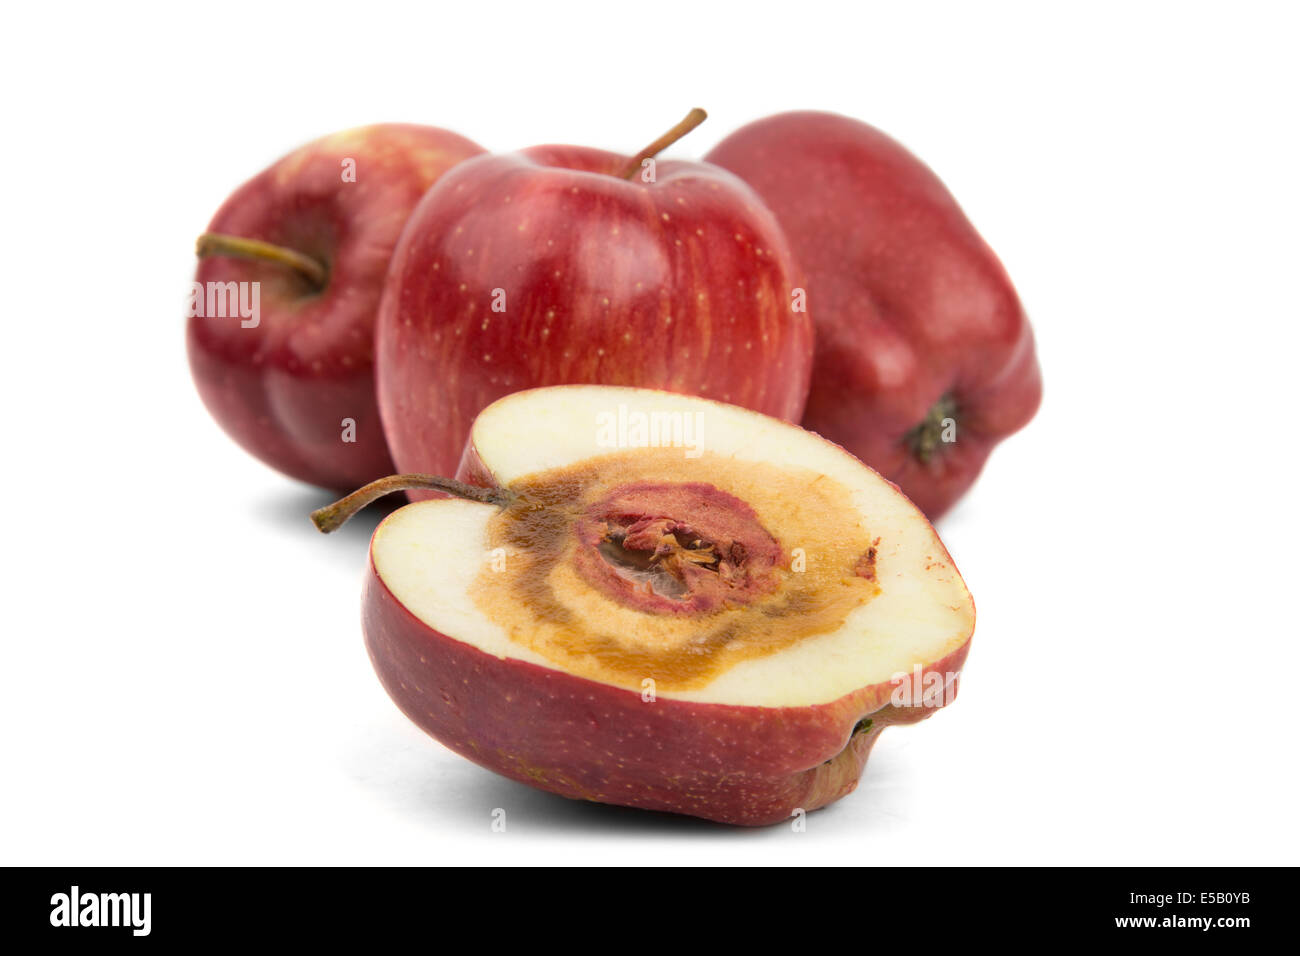 rotten cut red apple on a white background - Stock Image